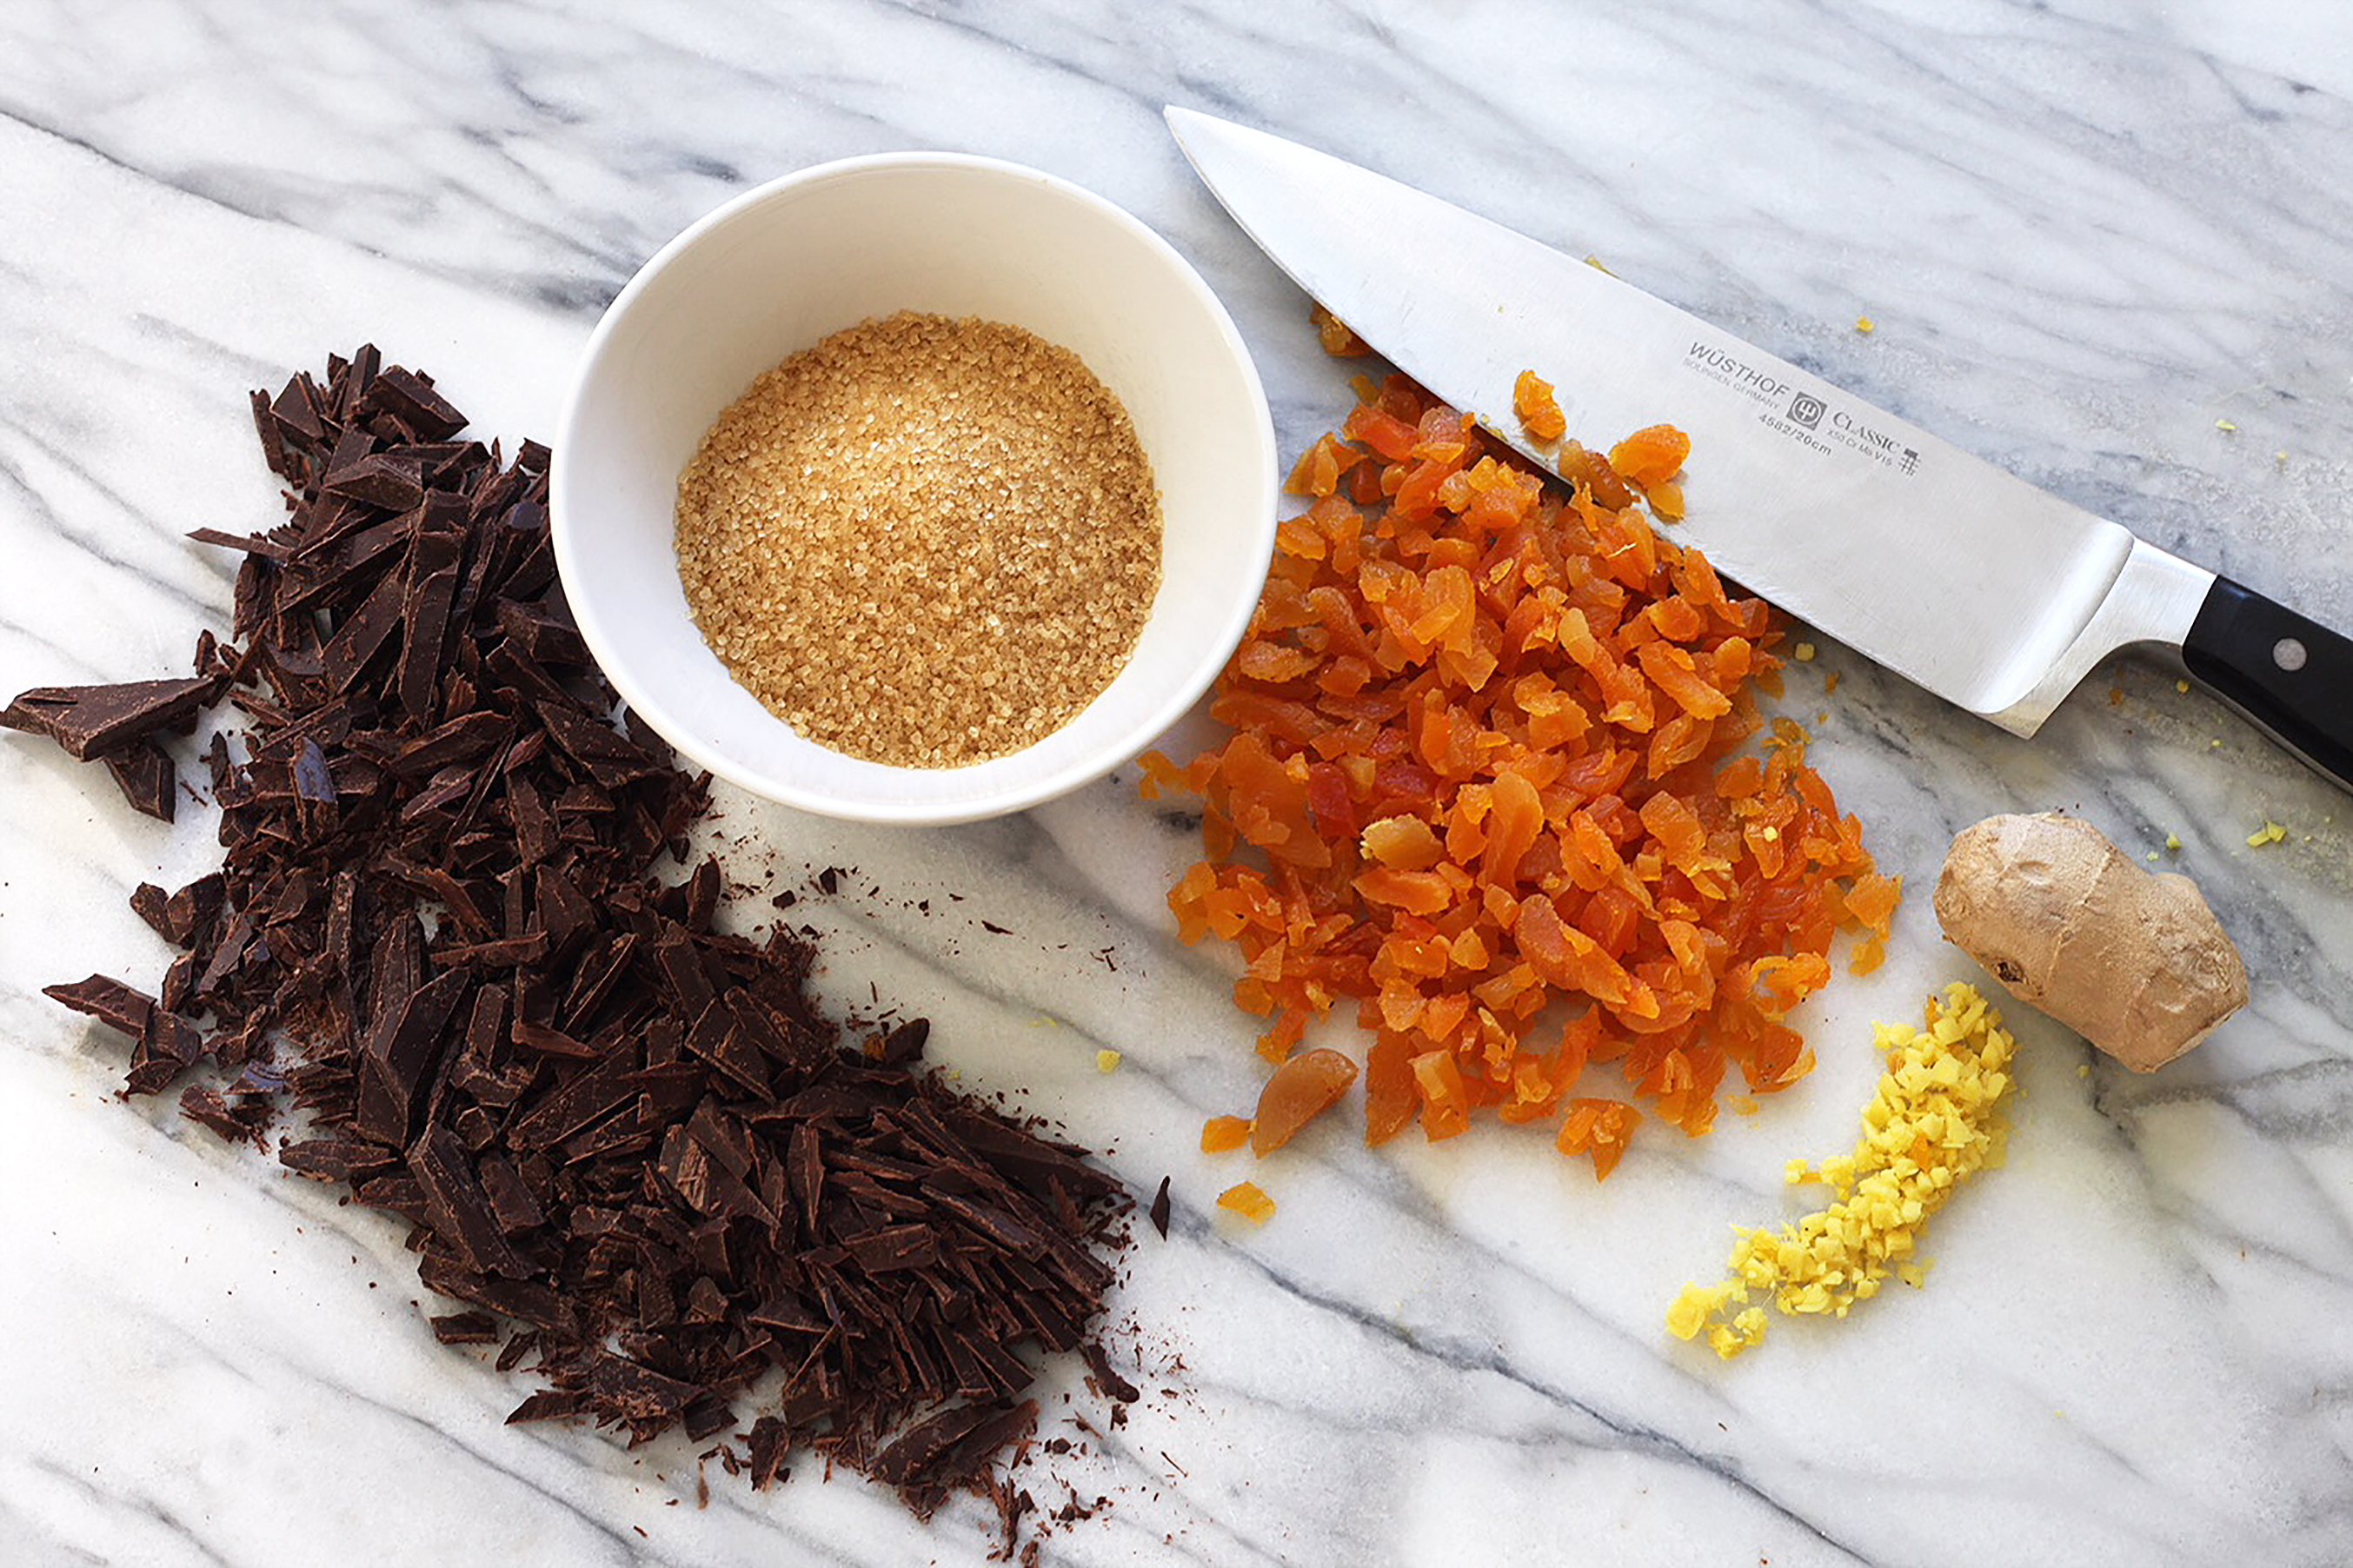 Ingredients for Holiday Ginger Cookies